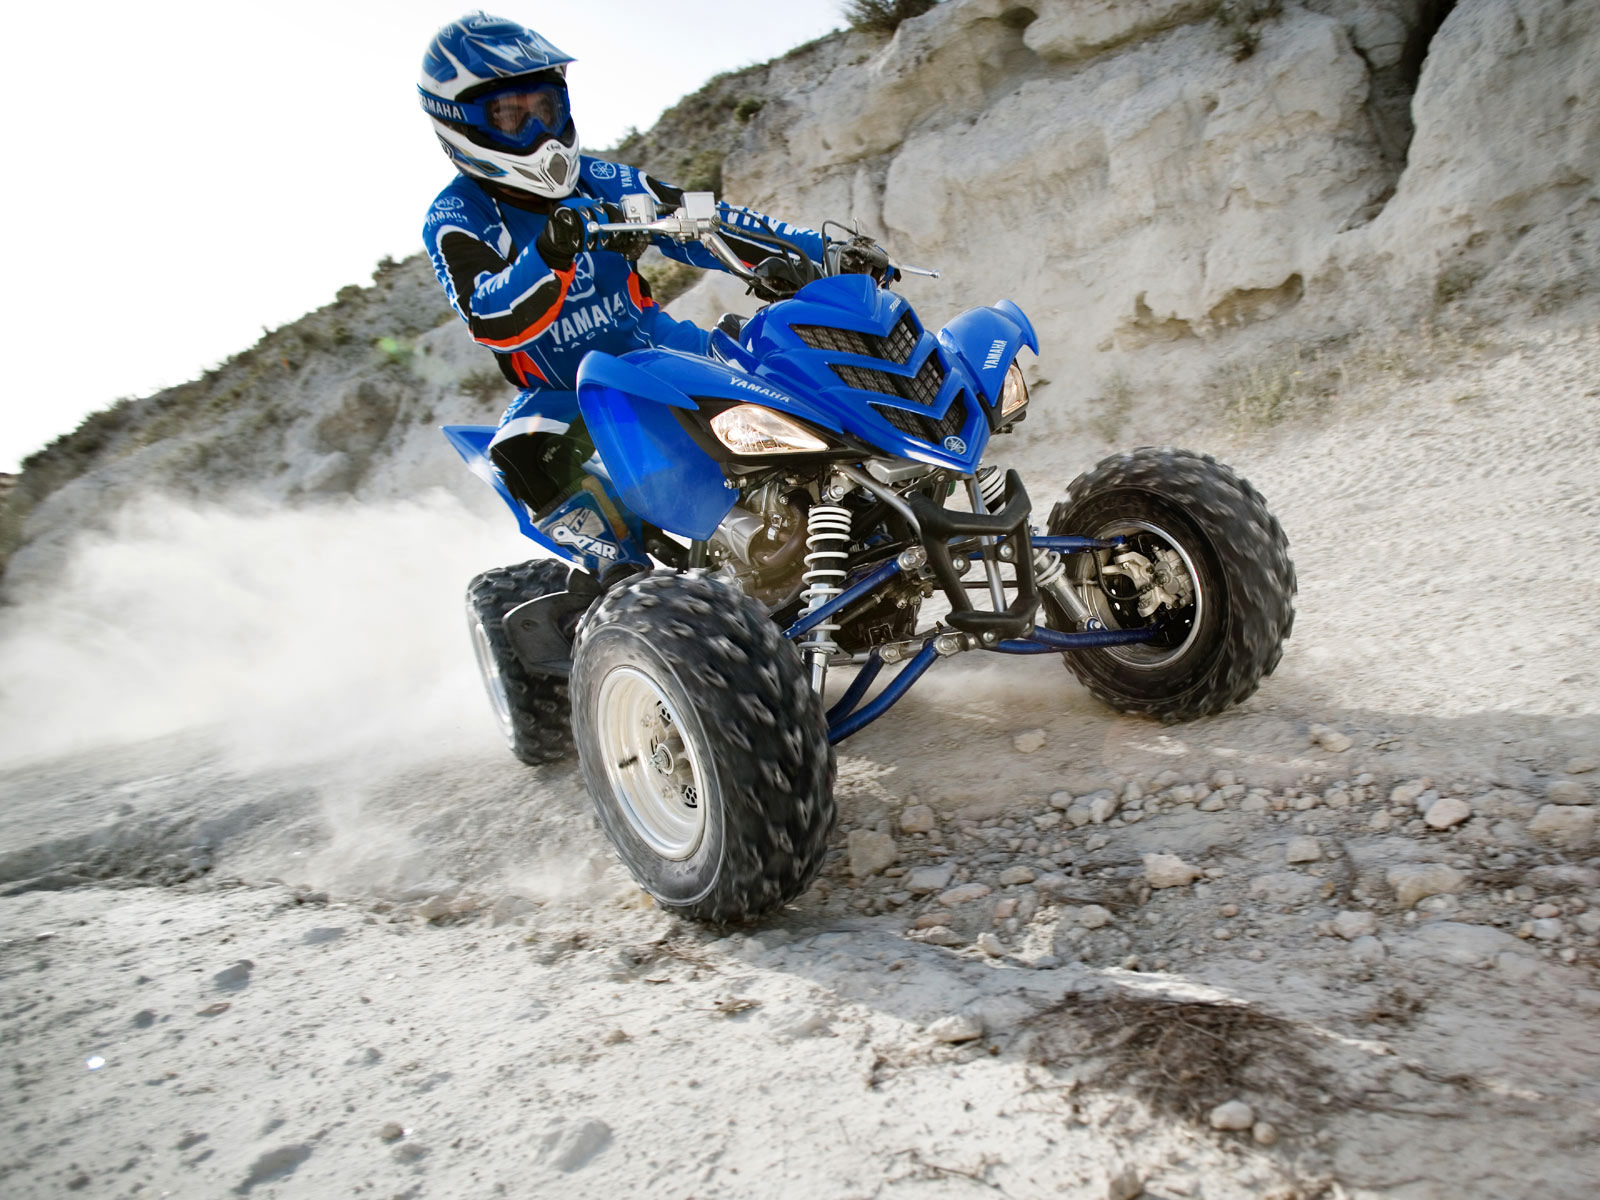 YAMAHA RAPTOR atv quad offroad motorbike bike dirtbike d wallpaper 1600x1200